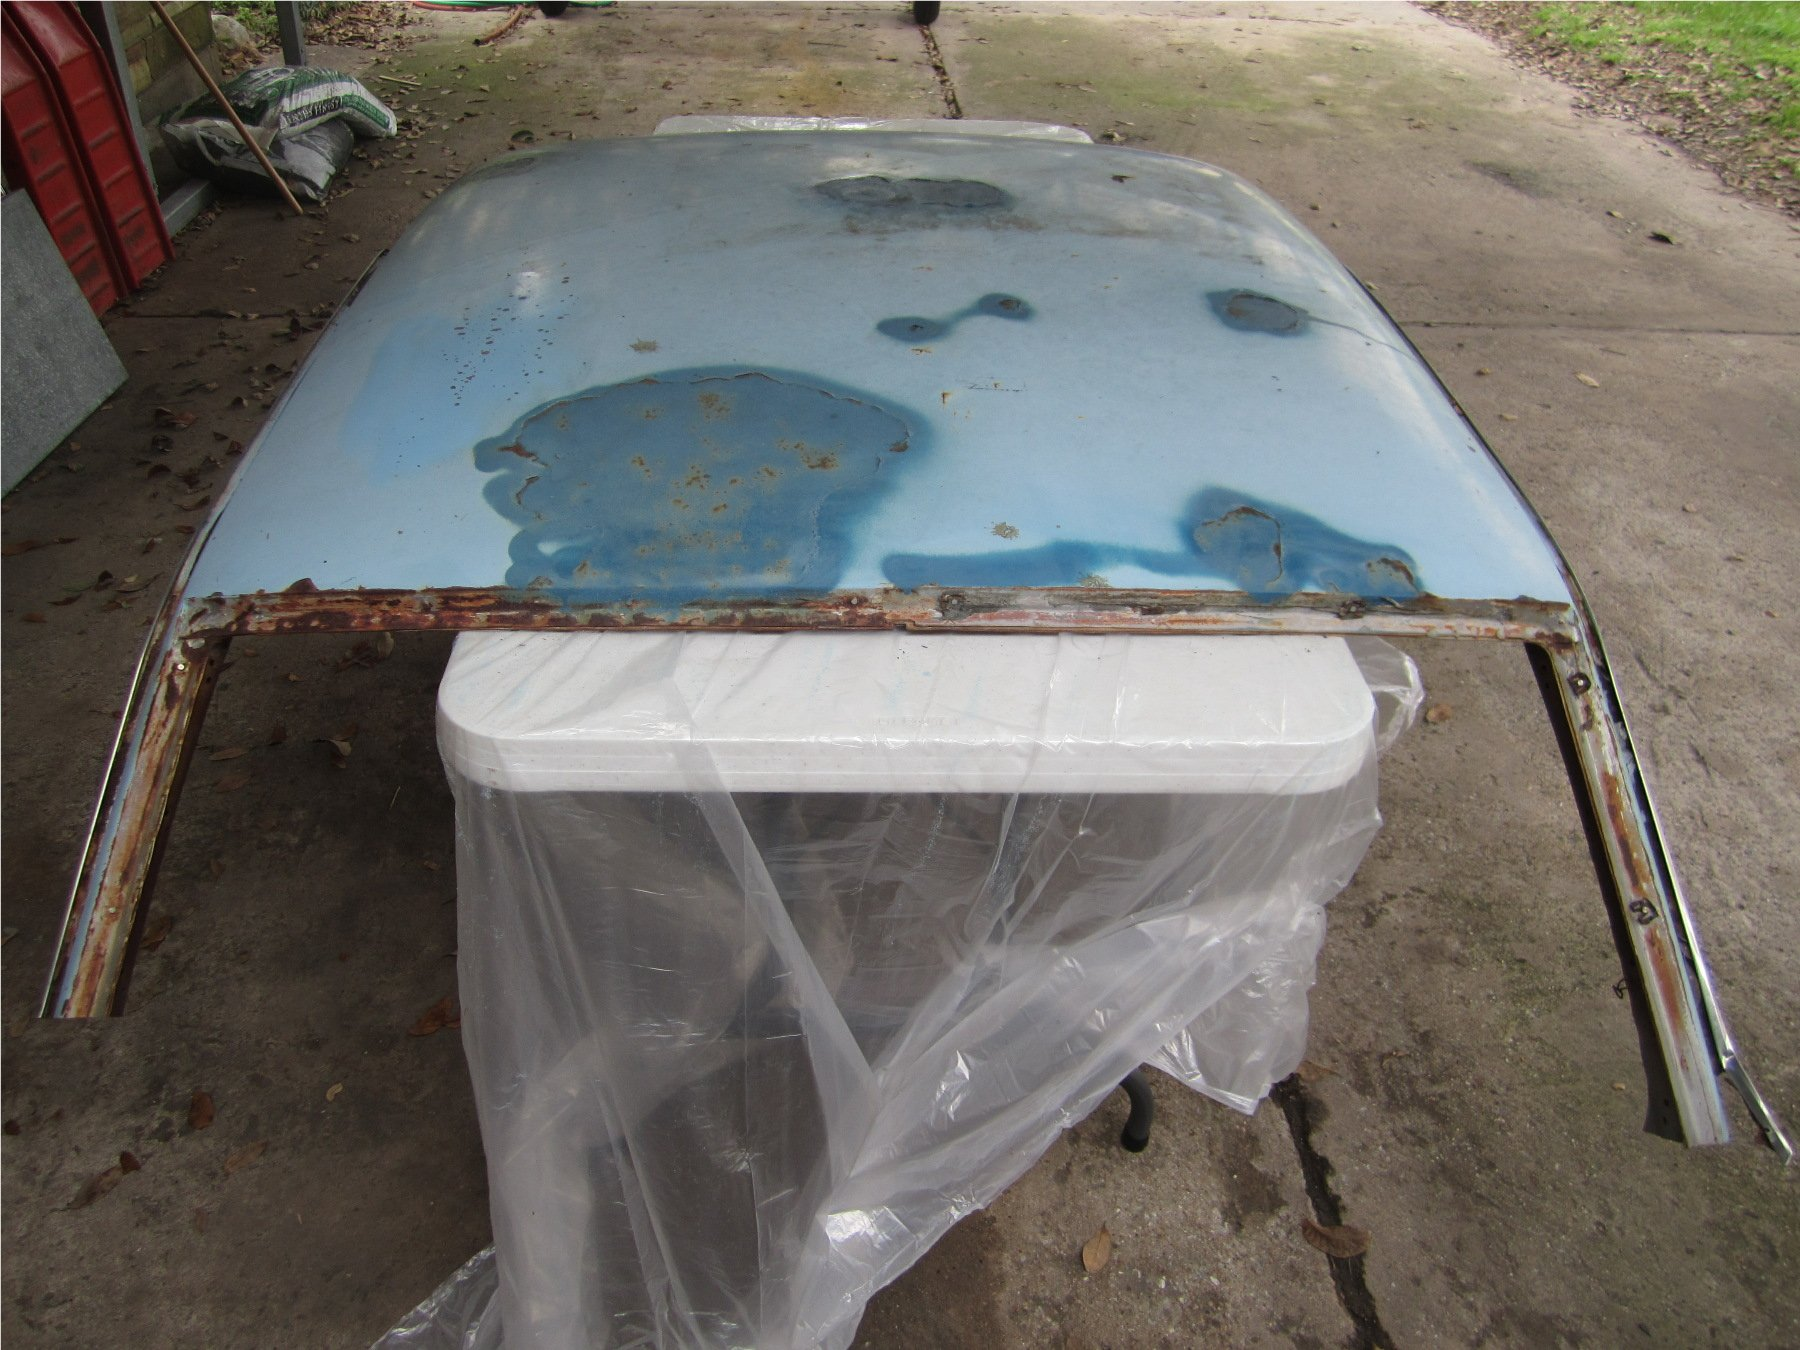 1964 Coupe Roof Skin Replacement In Bare Metal Ford